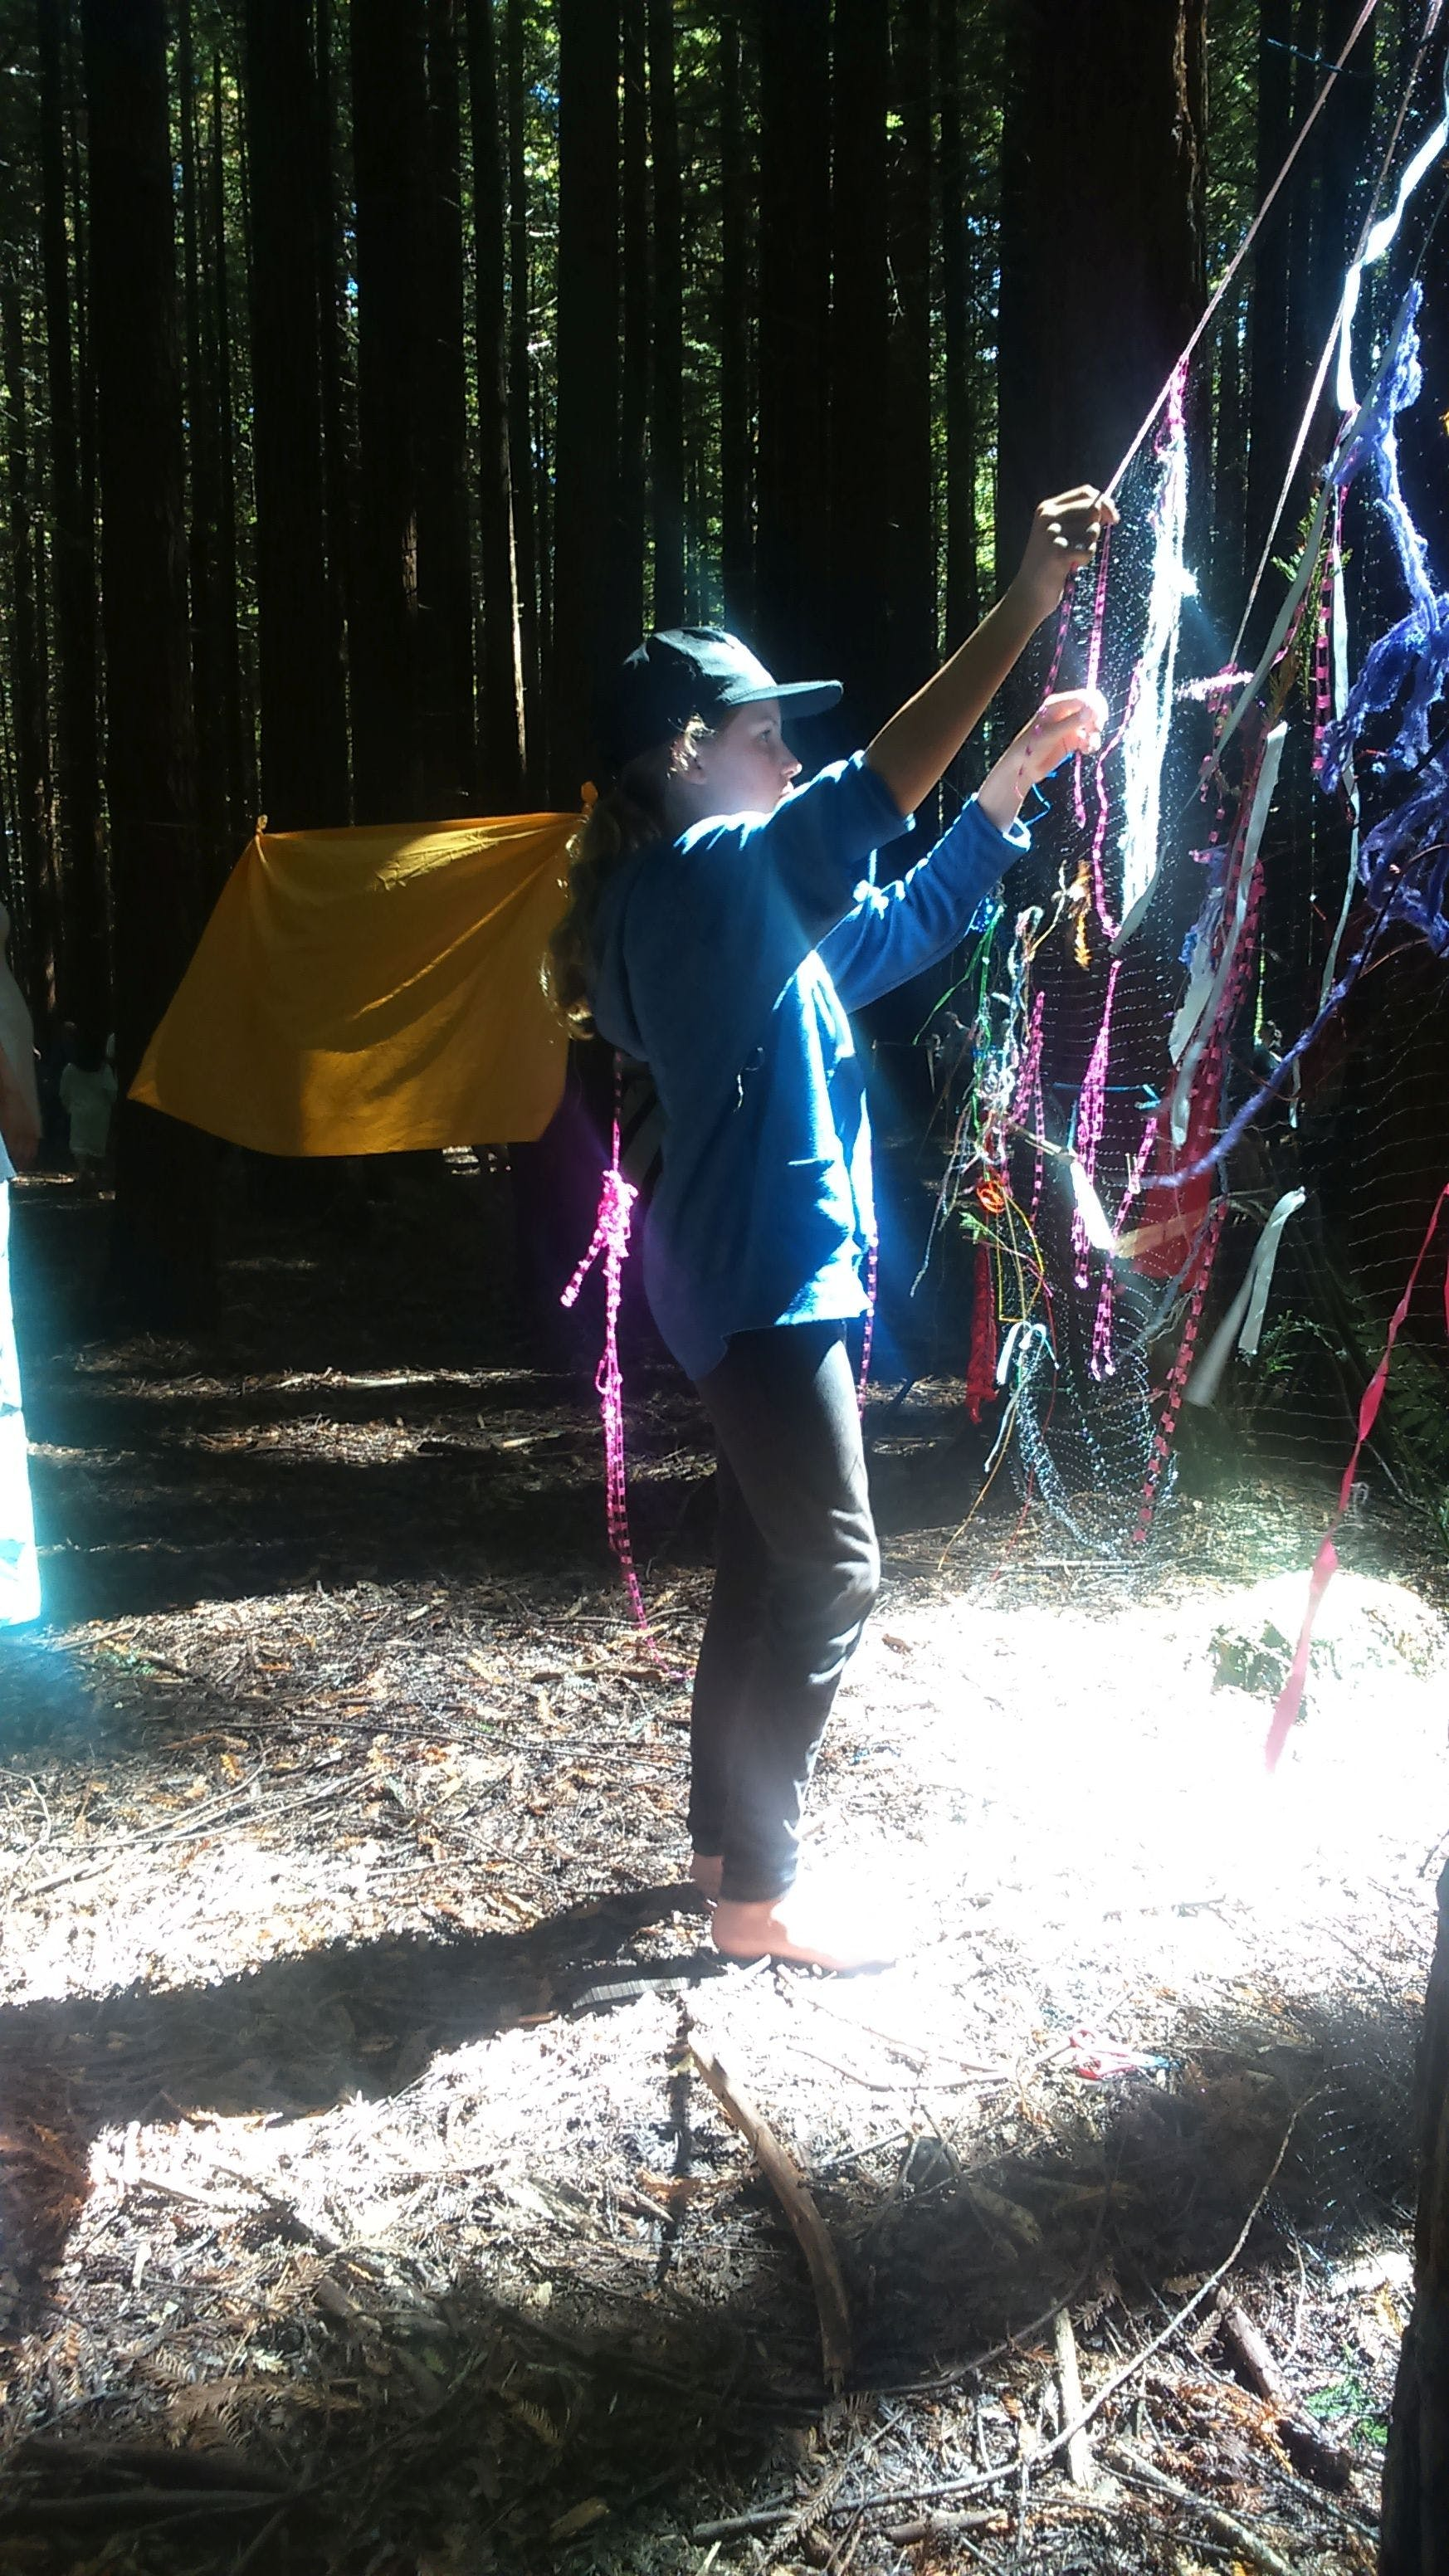 #13 Dream Weaving in the Redwoods